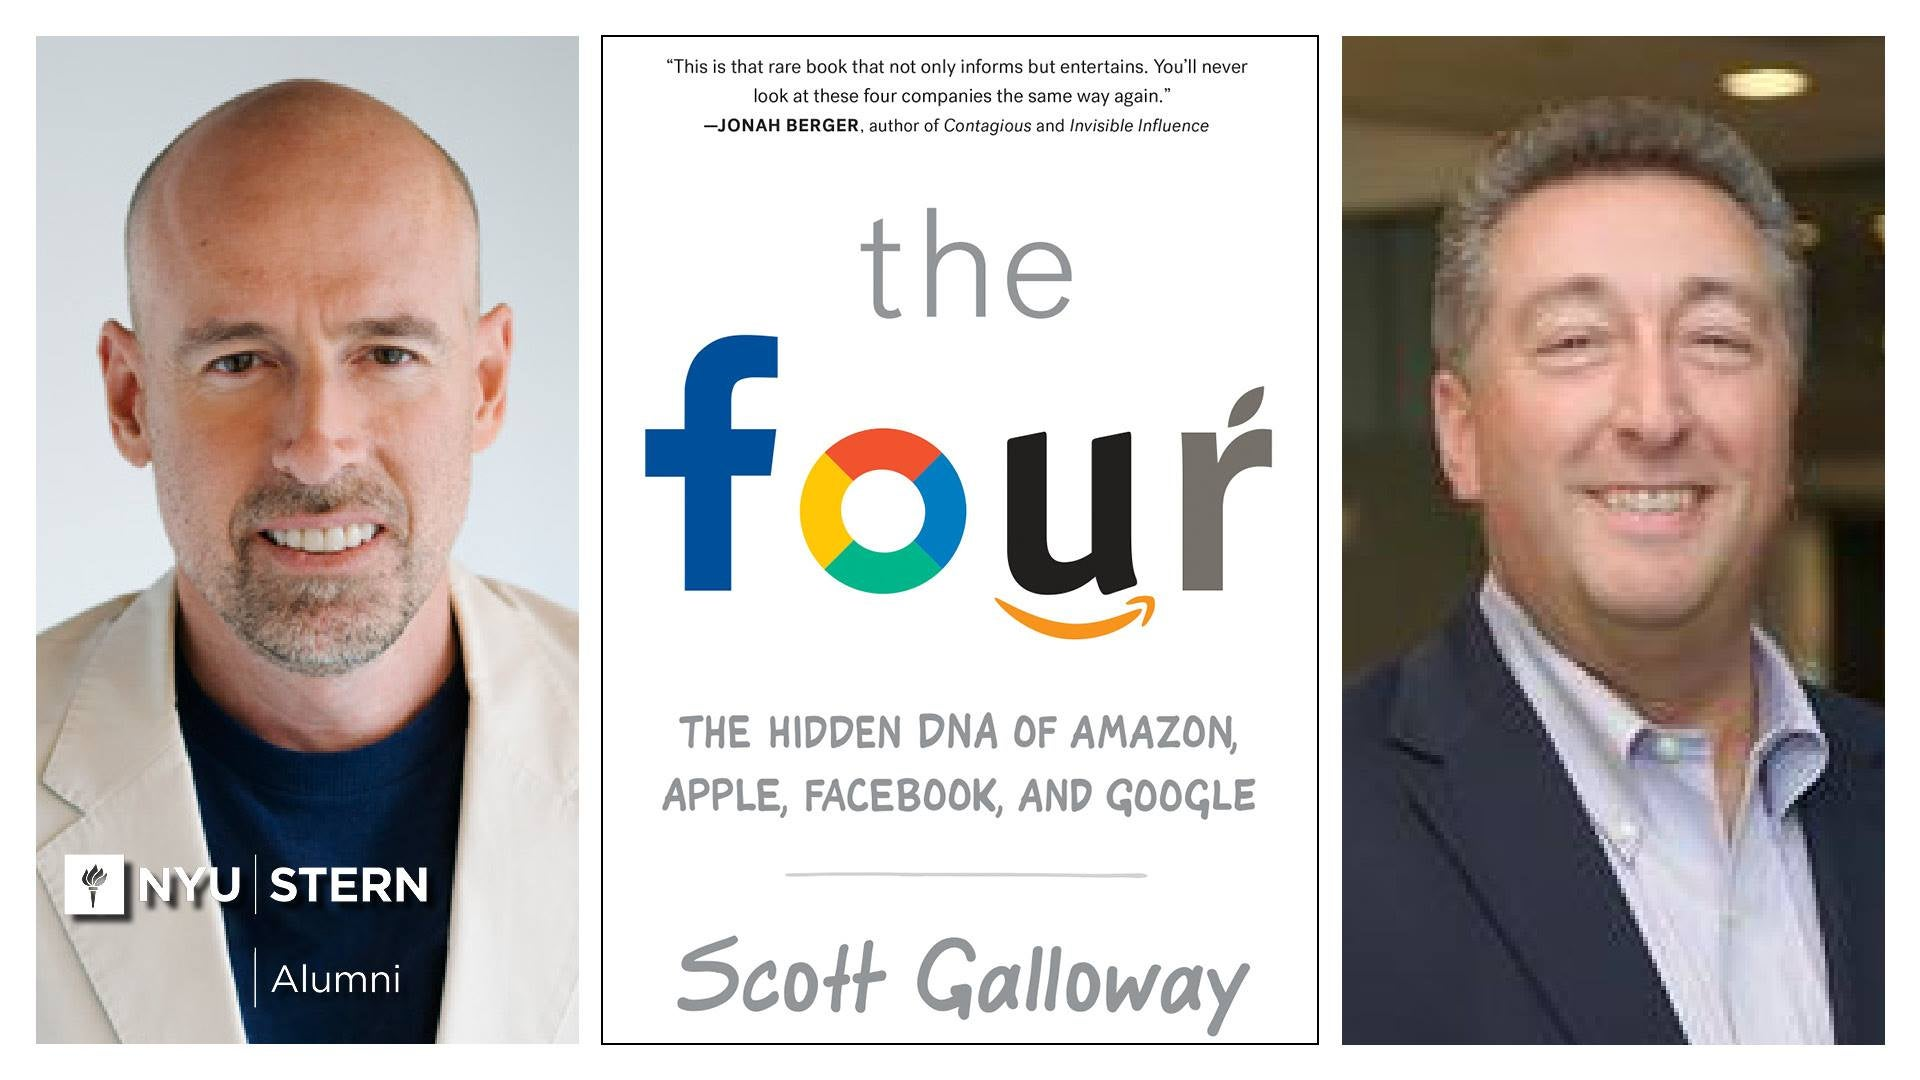 Event | Author Lecture Series | Scott Galloway & Barry Ritholtz event body image